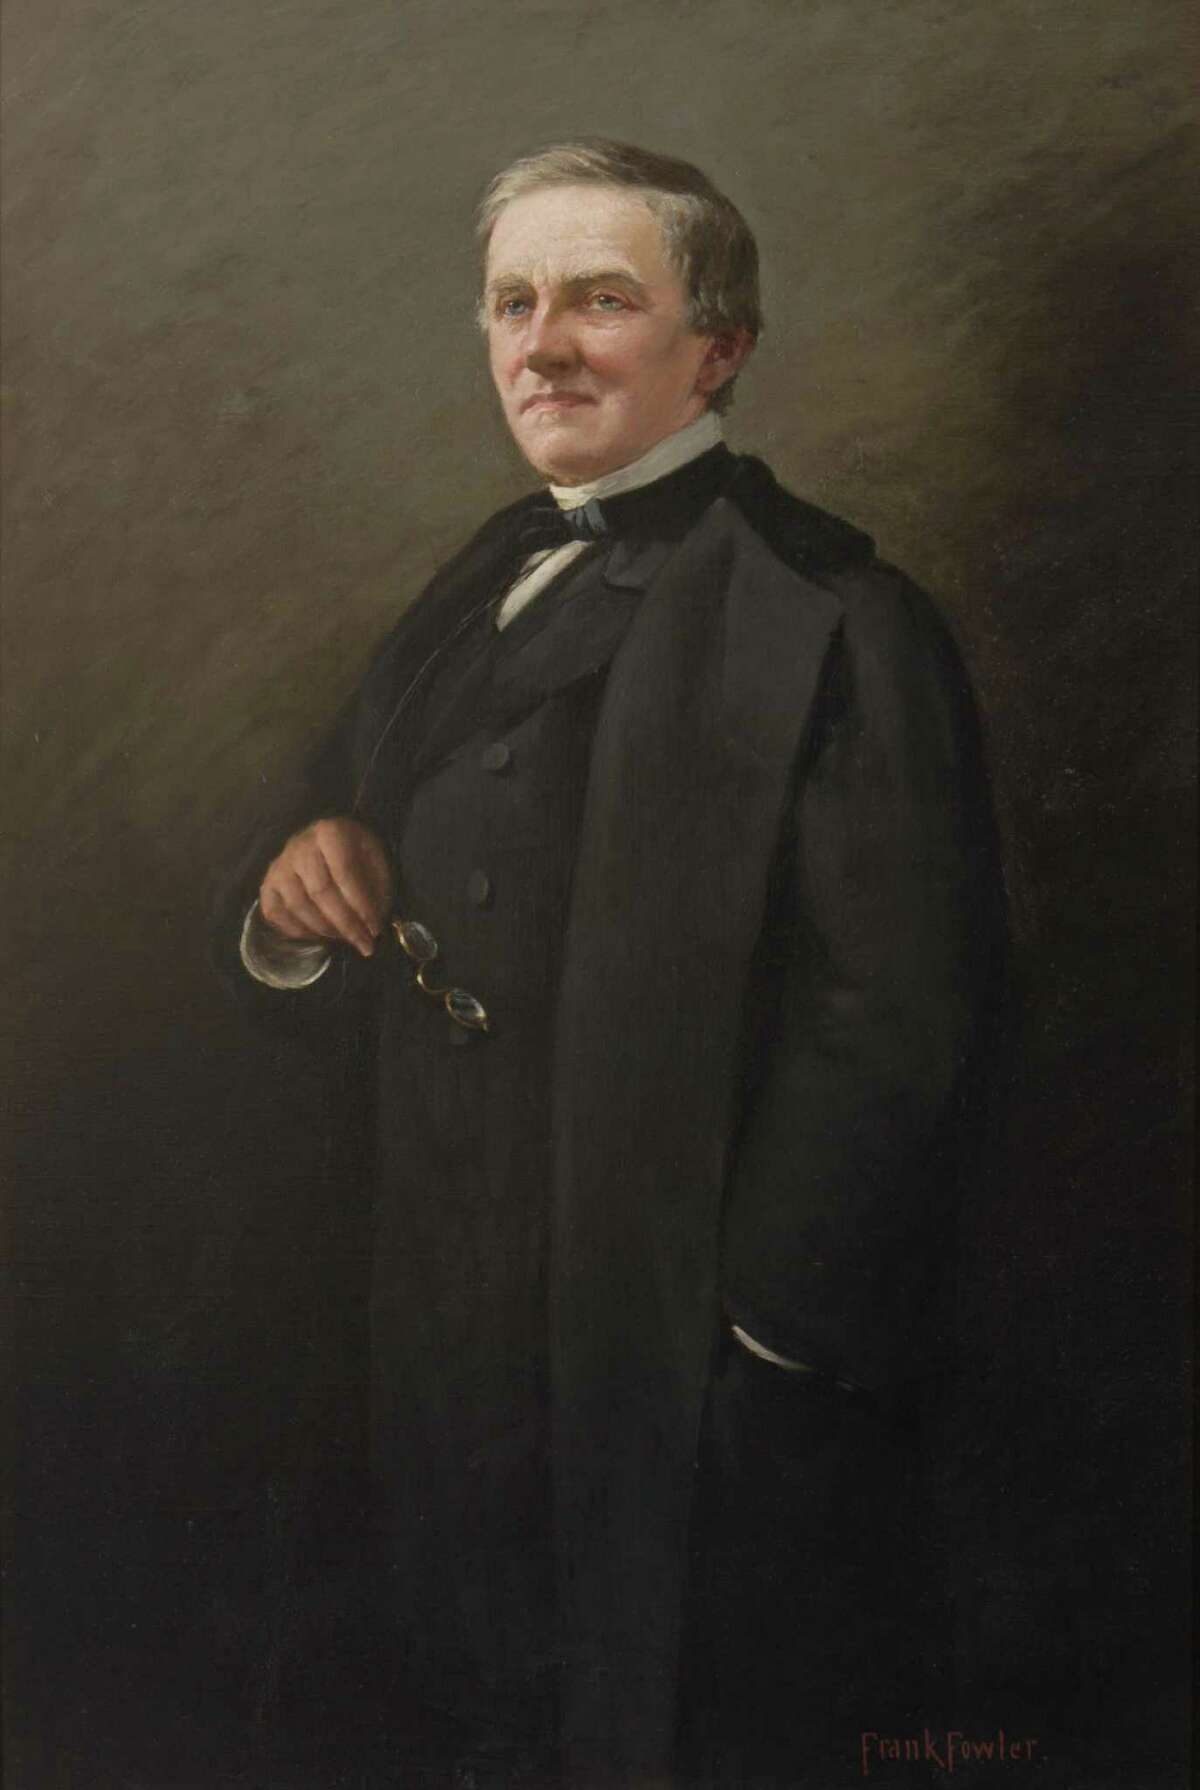 Samuel J. Tilden, 25th Governor of New York, and the Democratic nominee for the 1876 U.S. presidential election. (State Archive)